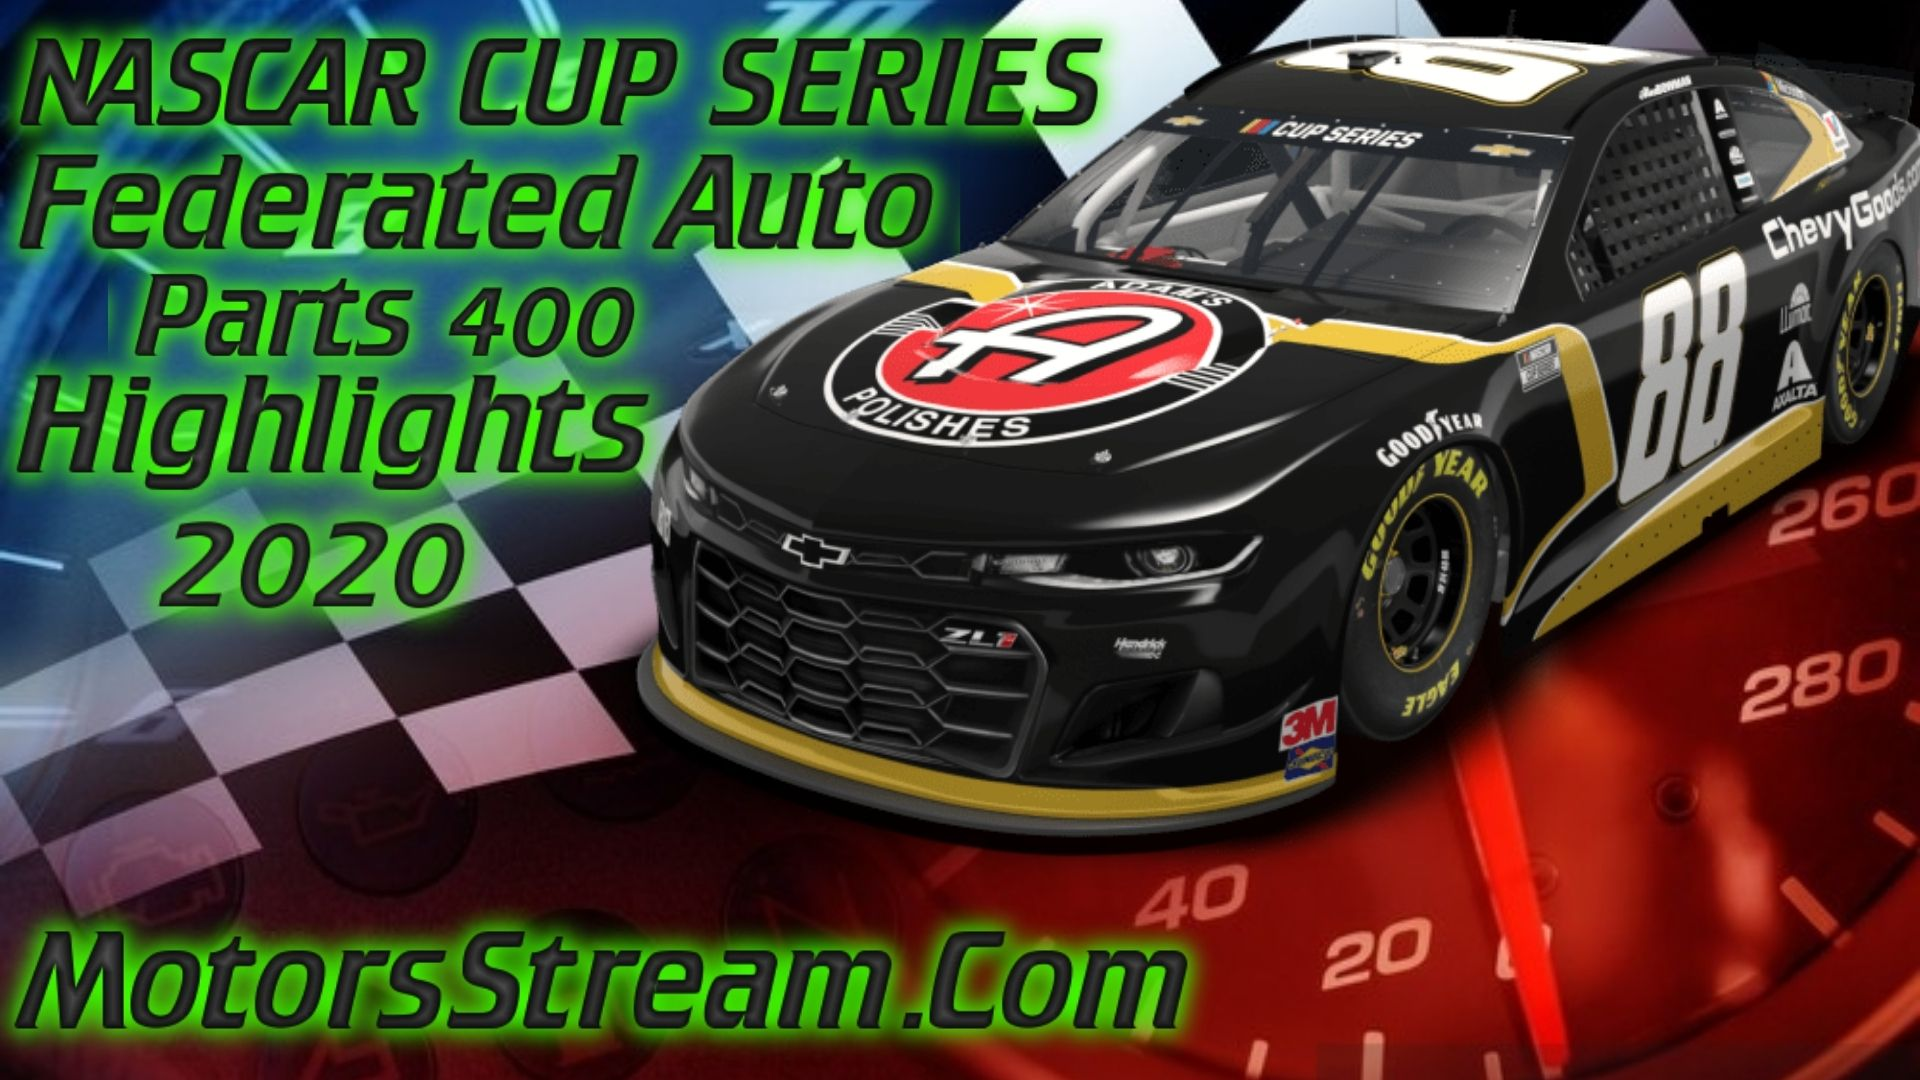 Federated Auto Parts 400 Highlights 2020 NASCARCup Series